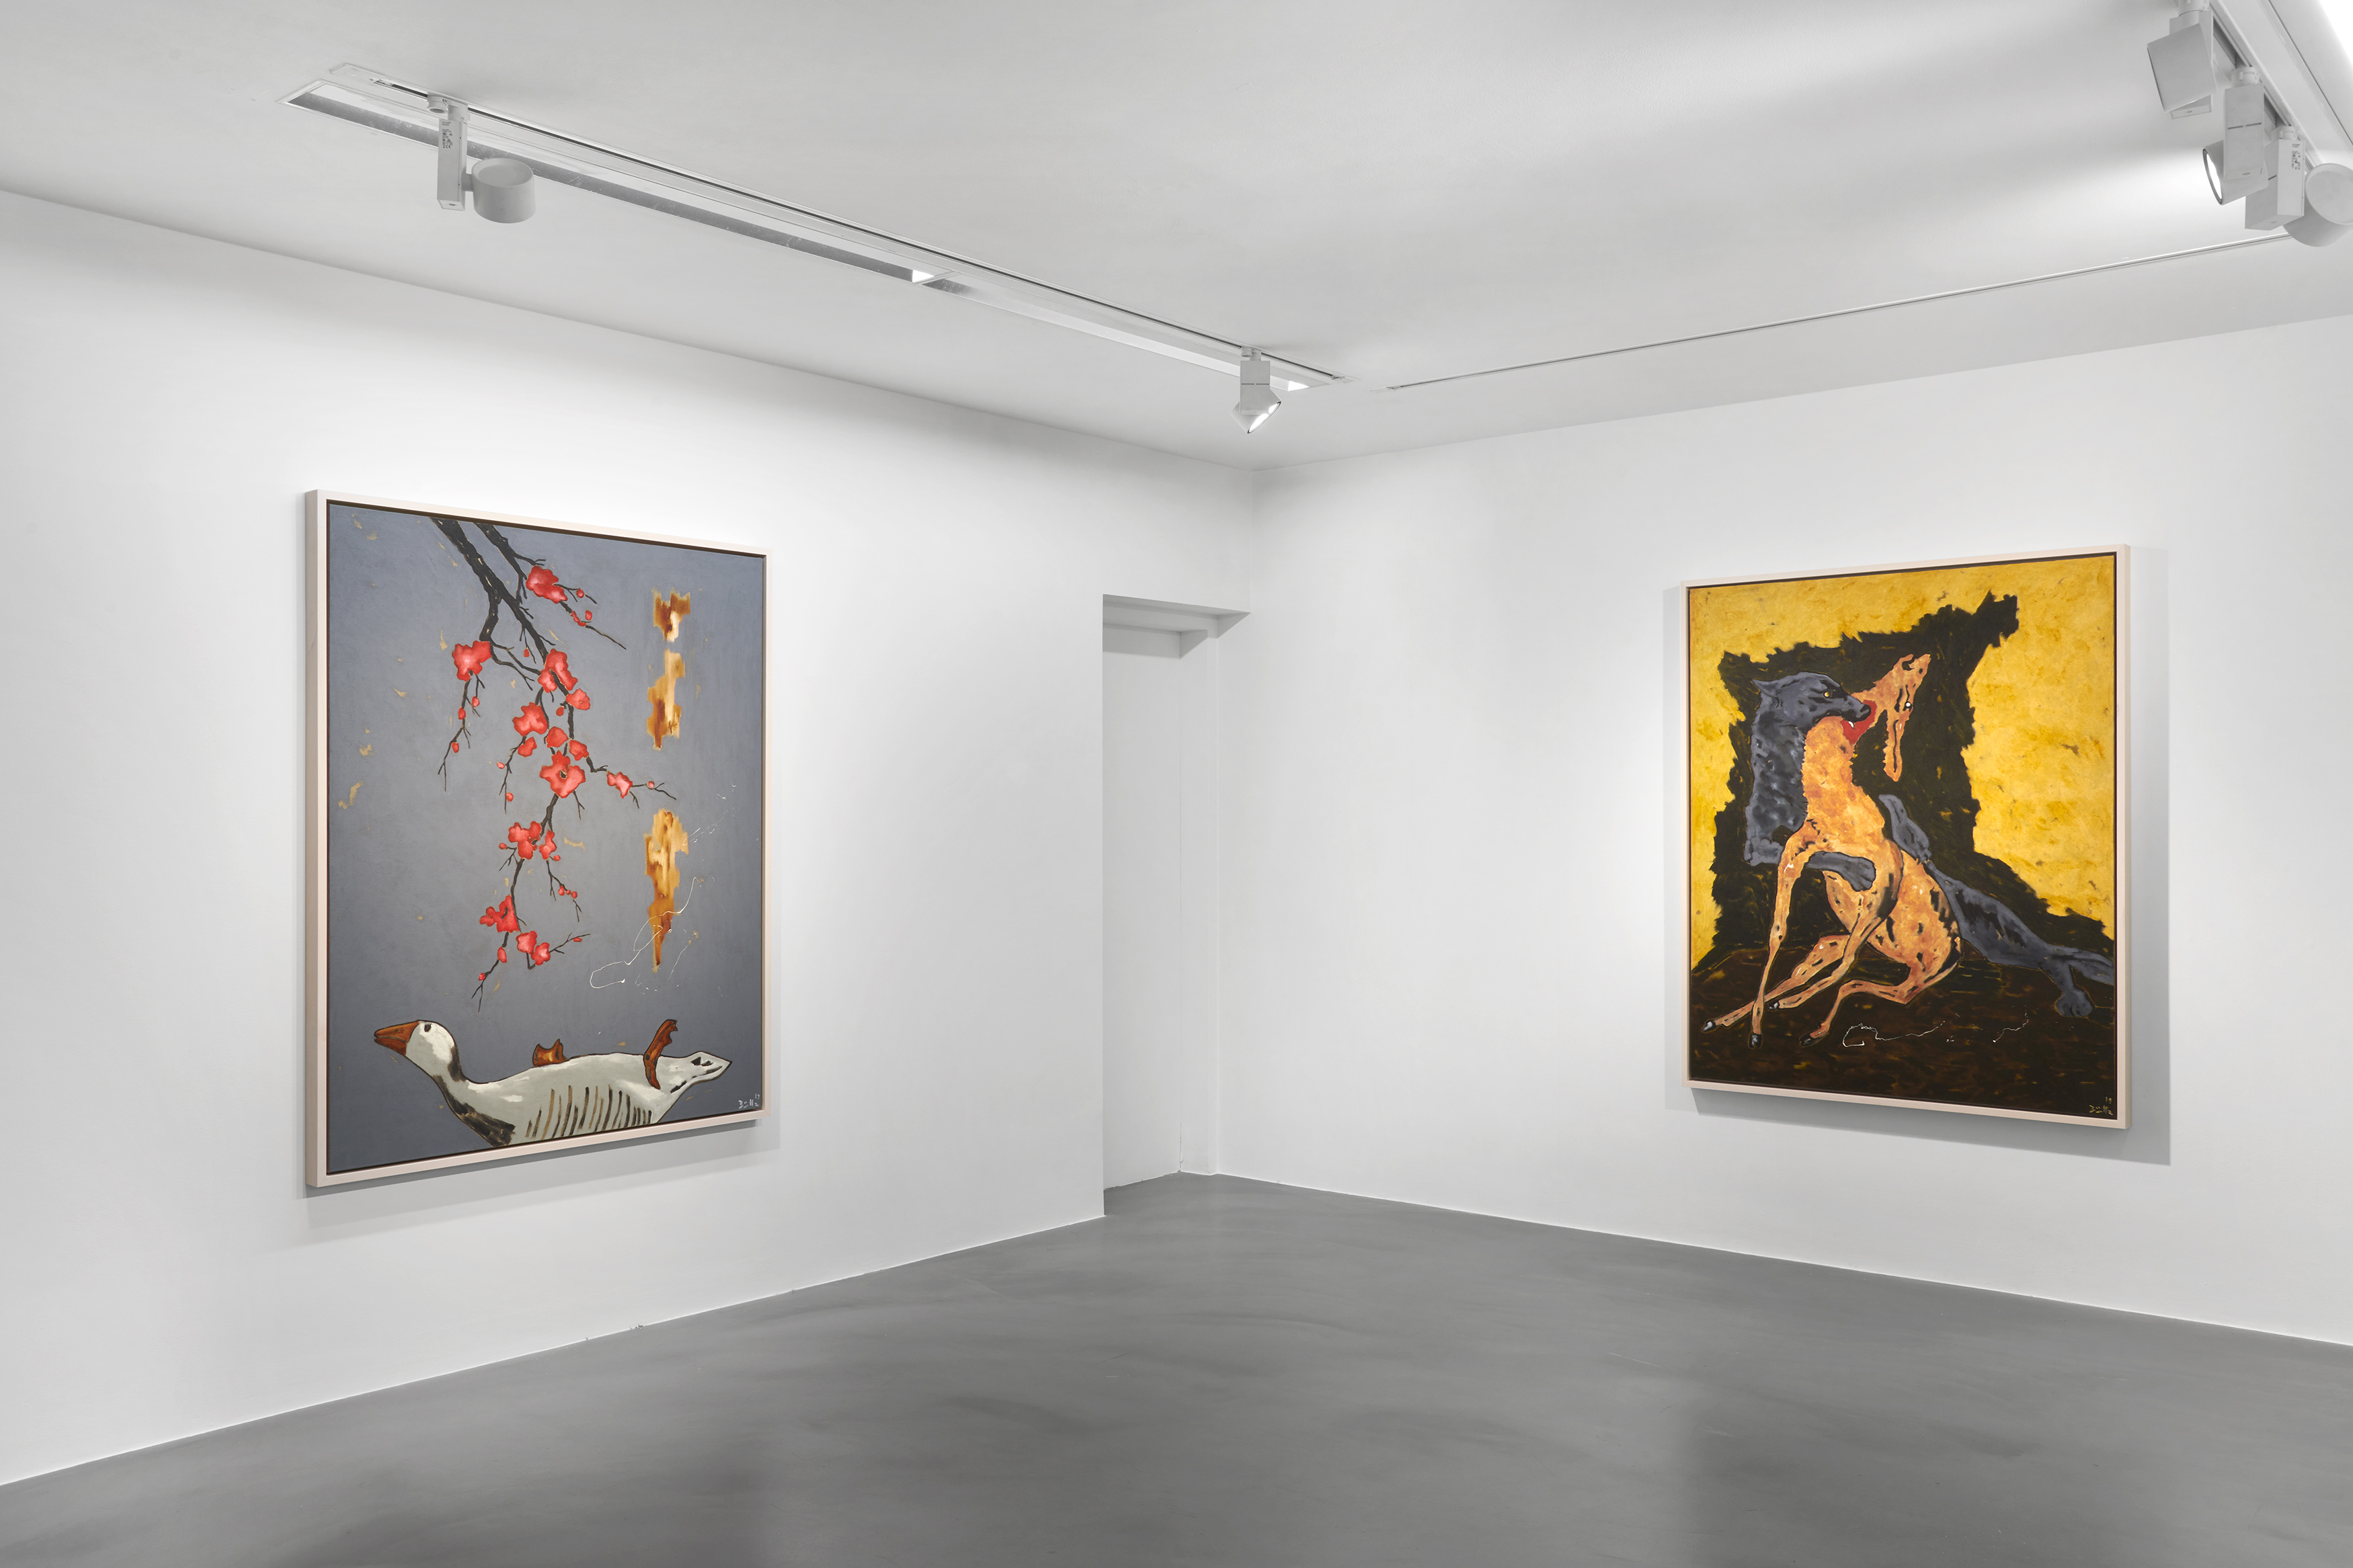 Installation view: Werner Büttner: No Scene from My Studio, Simon Lee, London, 13 May– 10 June, 2021. All images courtesy of the artist and Simon Lee Gallery.